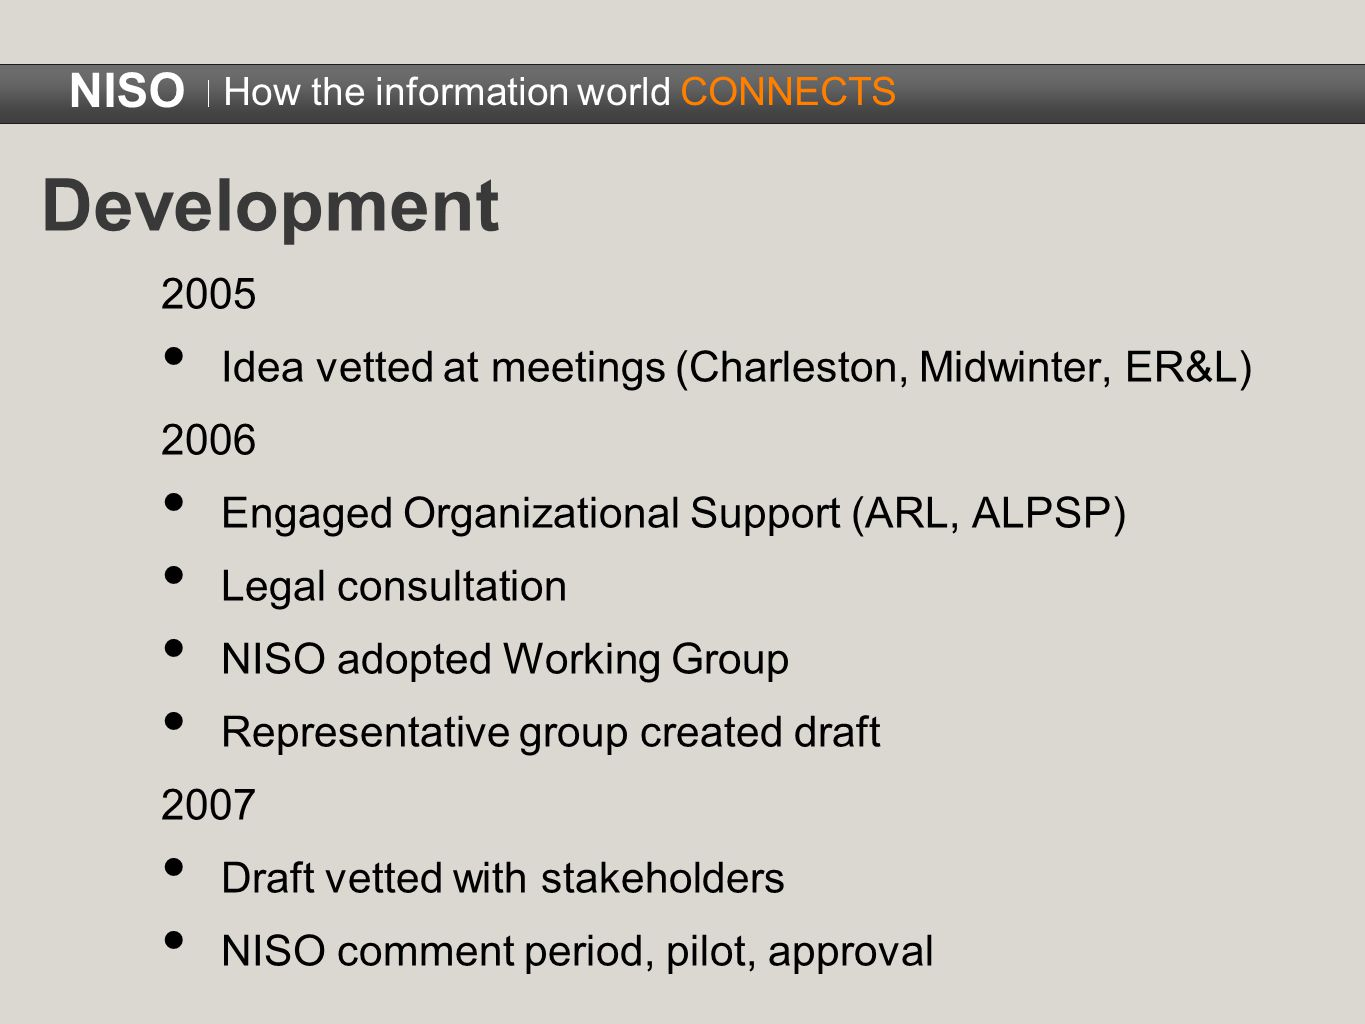 Development 2005 Idea vetted at meetings (Charleston, Midwinter, ER&L) 2006 Engaged Organizational Support (ARL, ALPSP) Legal consultation NISO adopted Working Group Representative group created draft 2007 Draft vetted with stakeholders NISO comment period, pilot, approval NISO How the information world CONNECTS